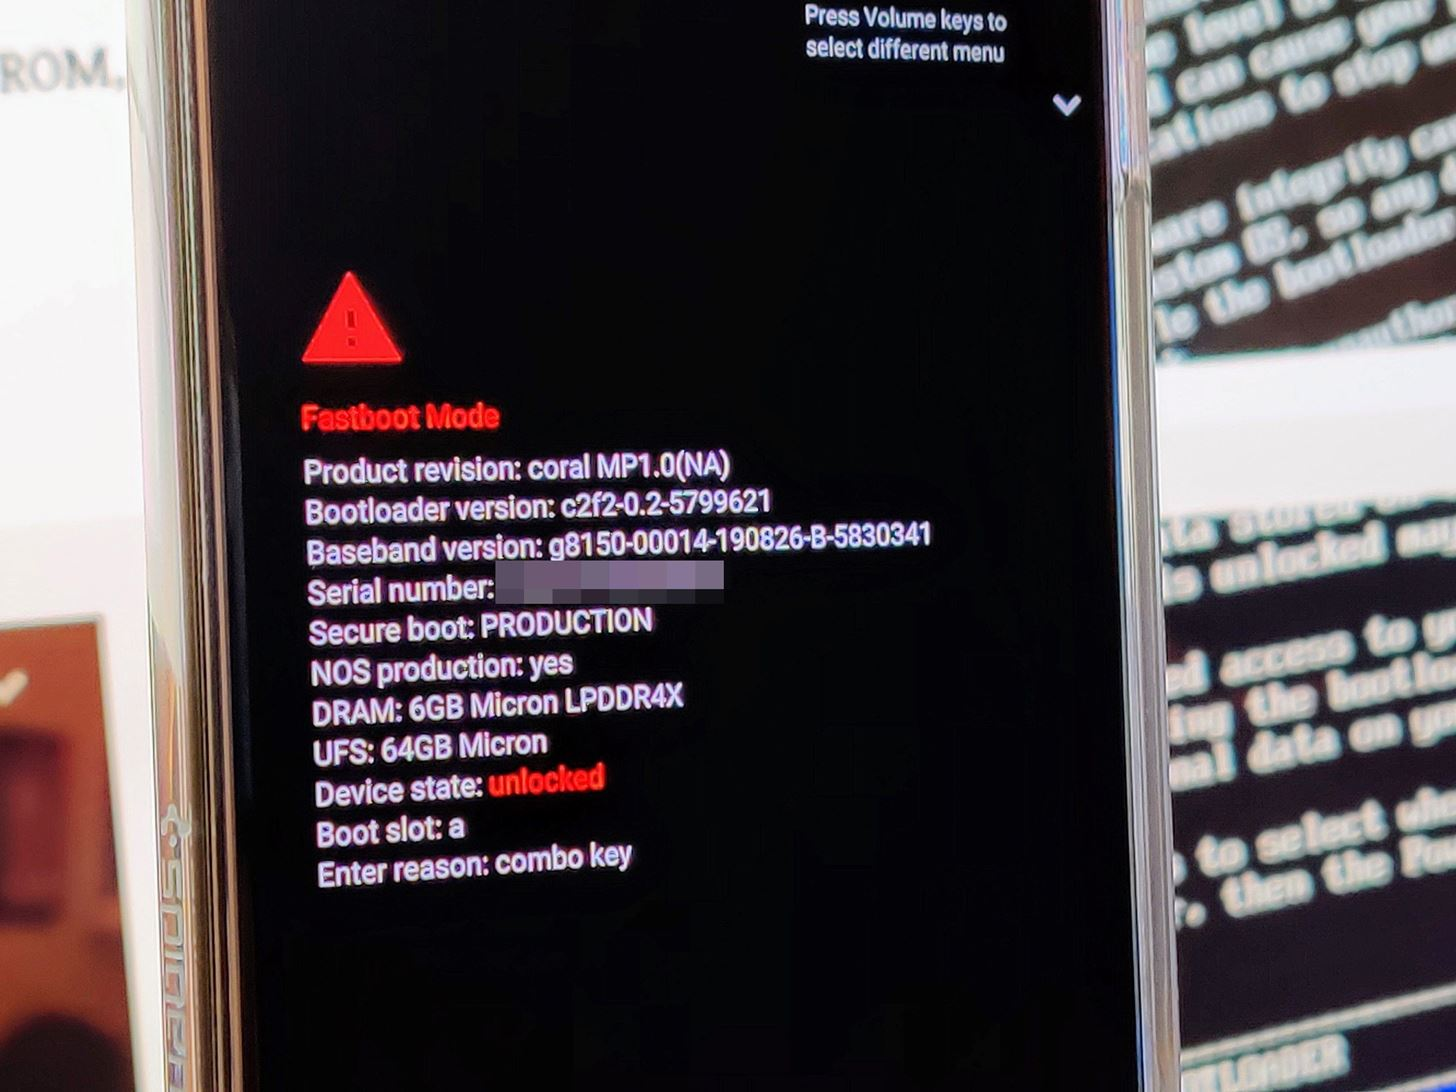 Pixel 4 Bootlooping after installing a Magisk module? To resolve the problem without TWRP